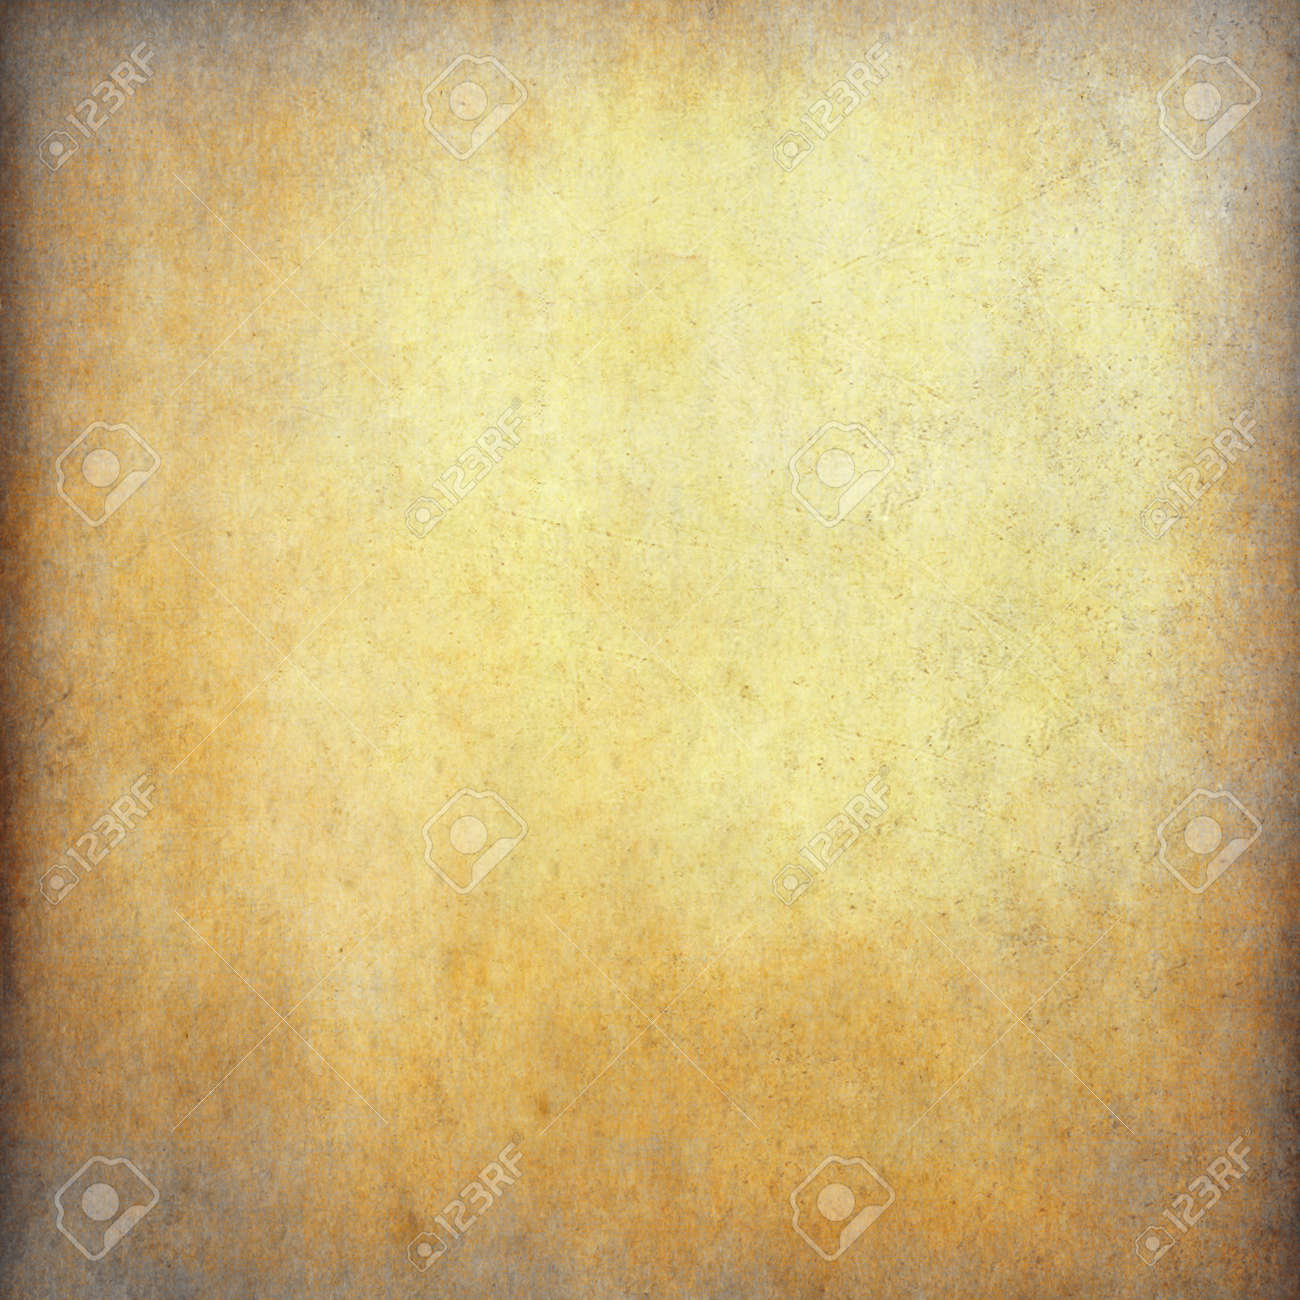 Grunge paper background with copy space Stock Photo - 10316295